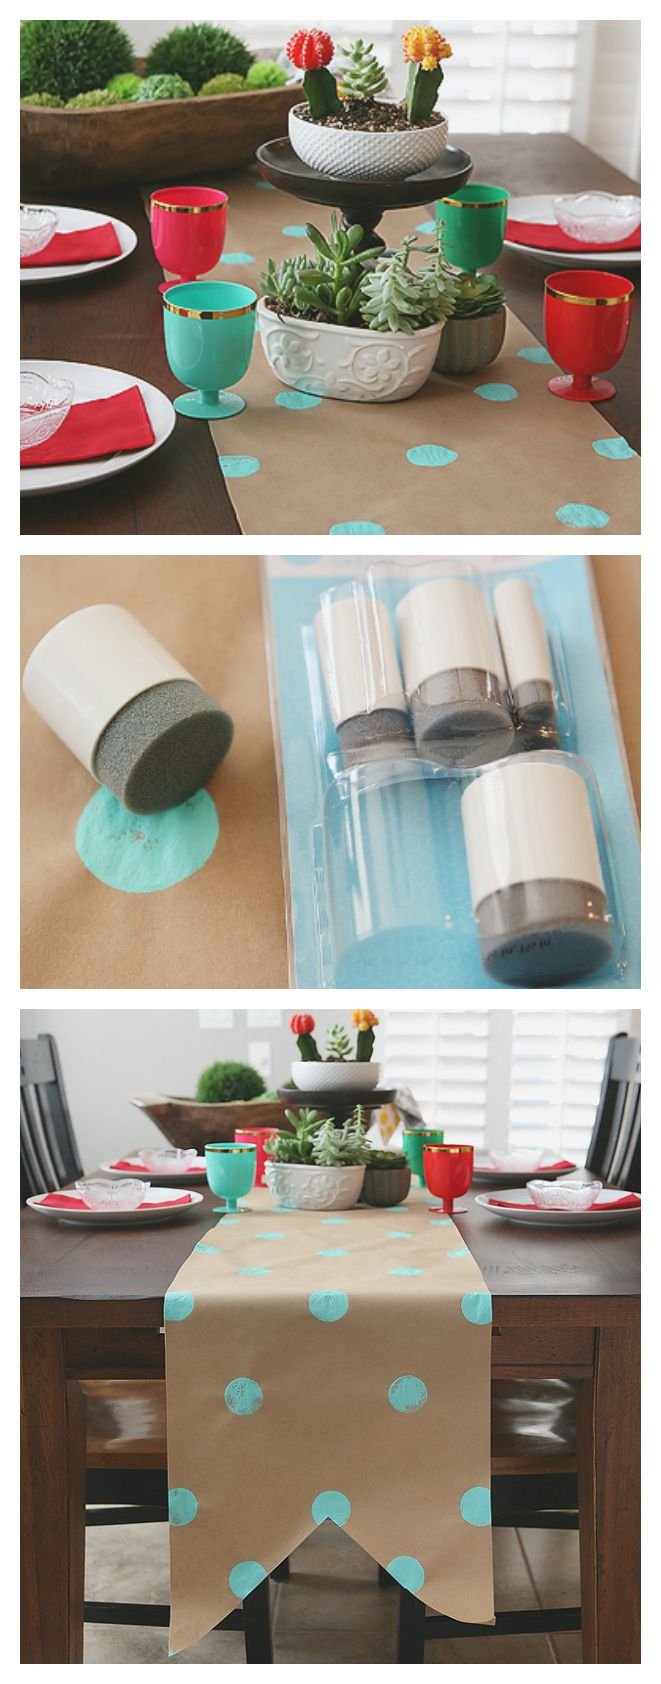 Kraft Paper Table Runner | Fun and Inexpensive Decorating Ideas for Parties or a...